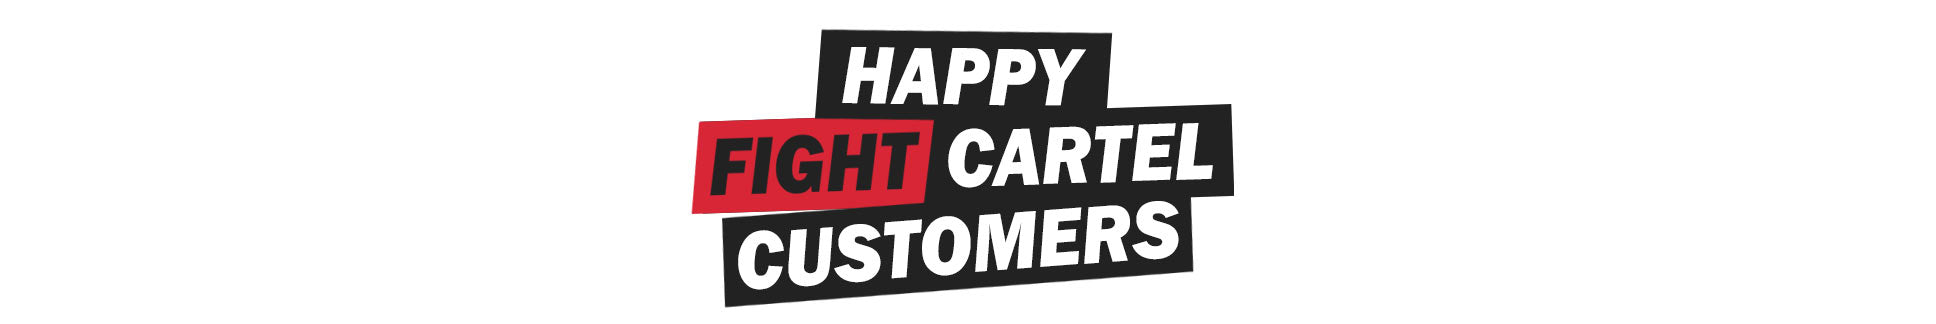 Fight Cartel customers